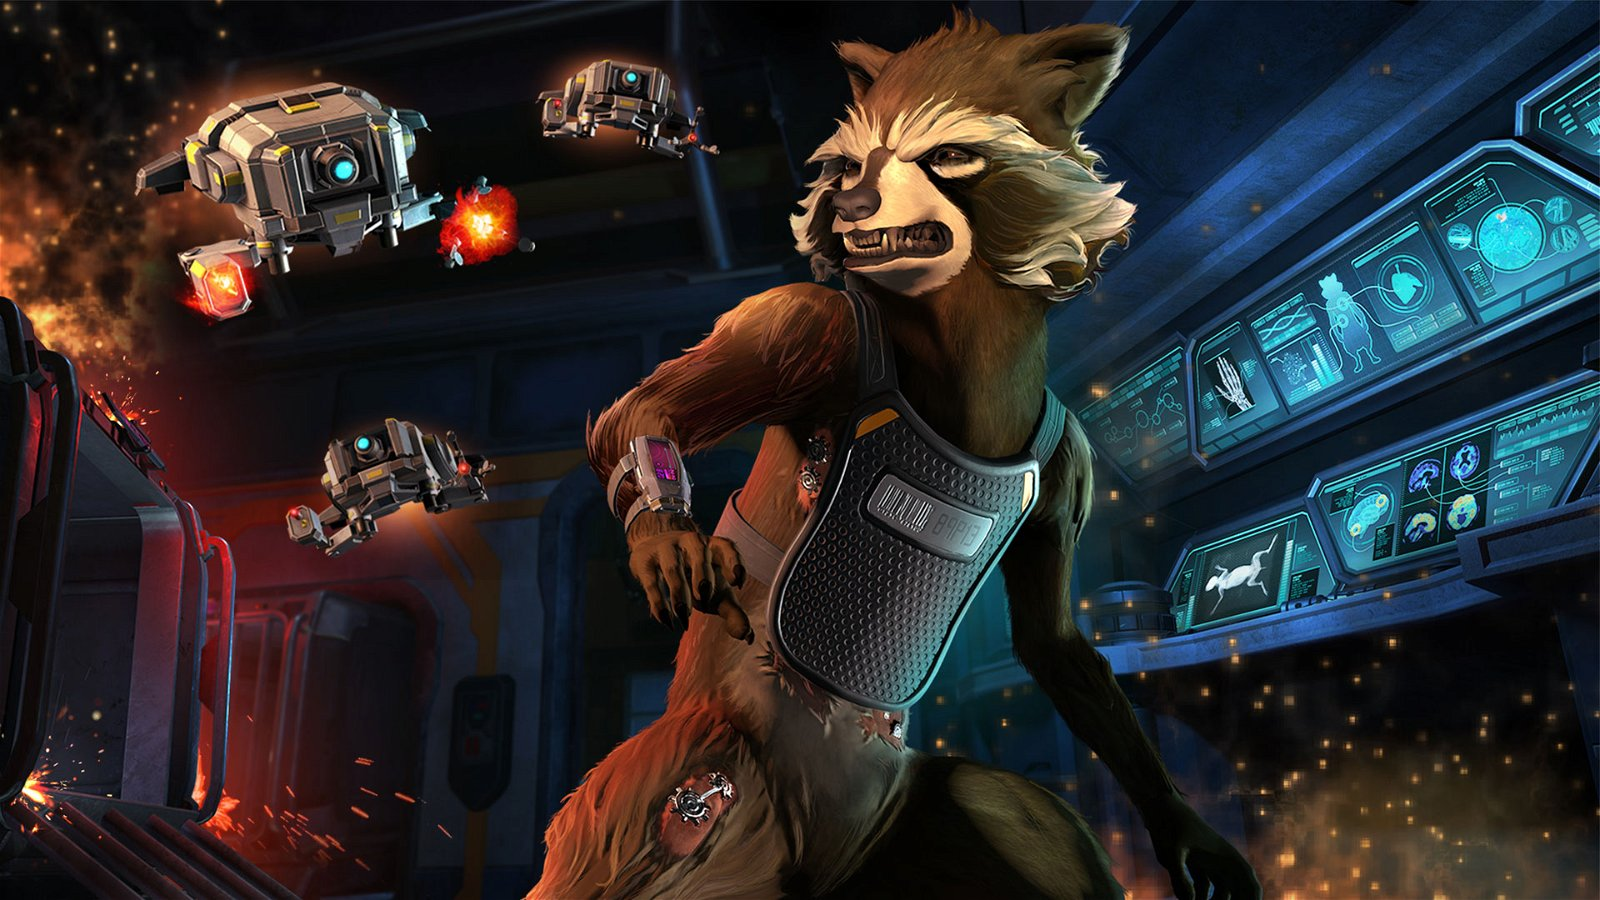 """Guardians of the Galaxy: A Telltale Series Episode 2: """"Under Pressure"""" Review 1"""